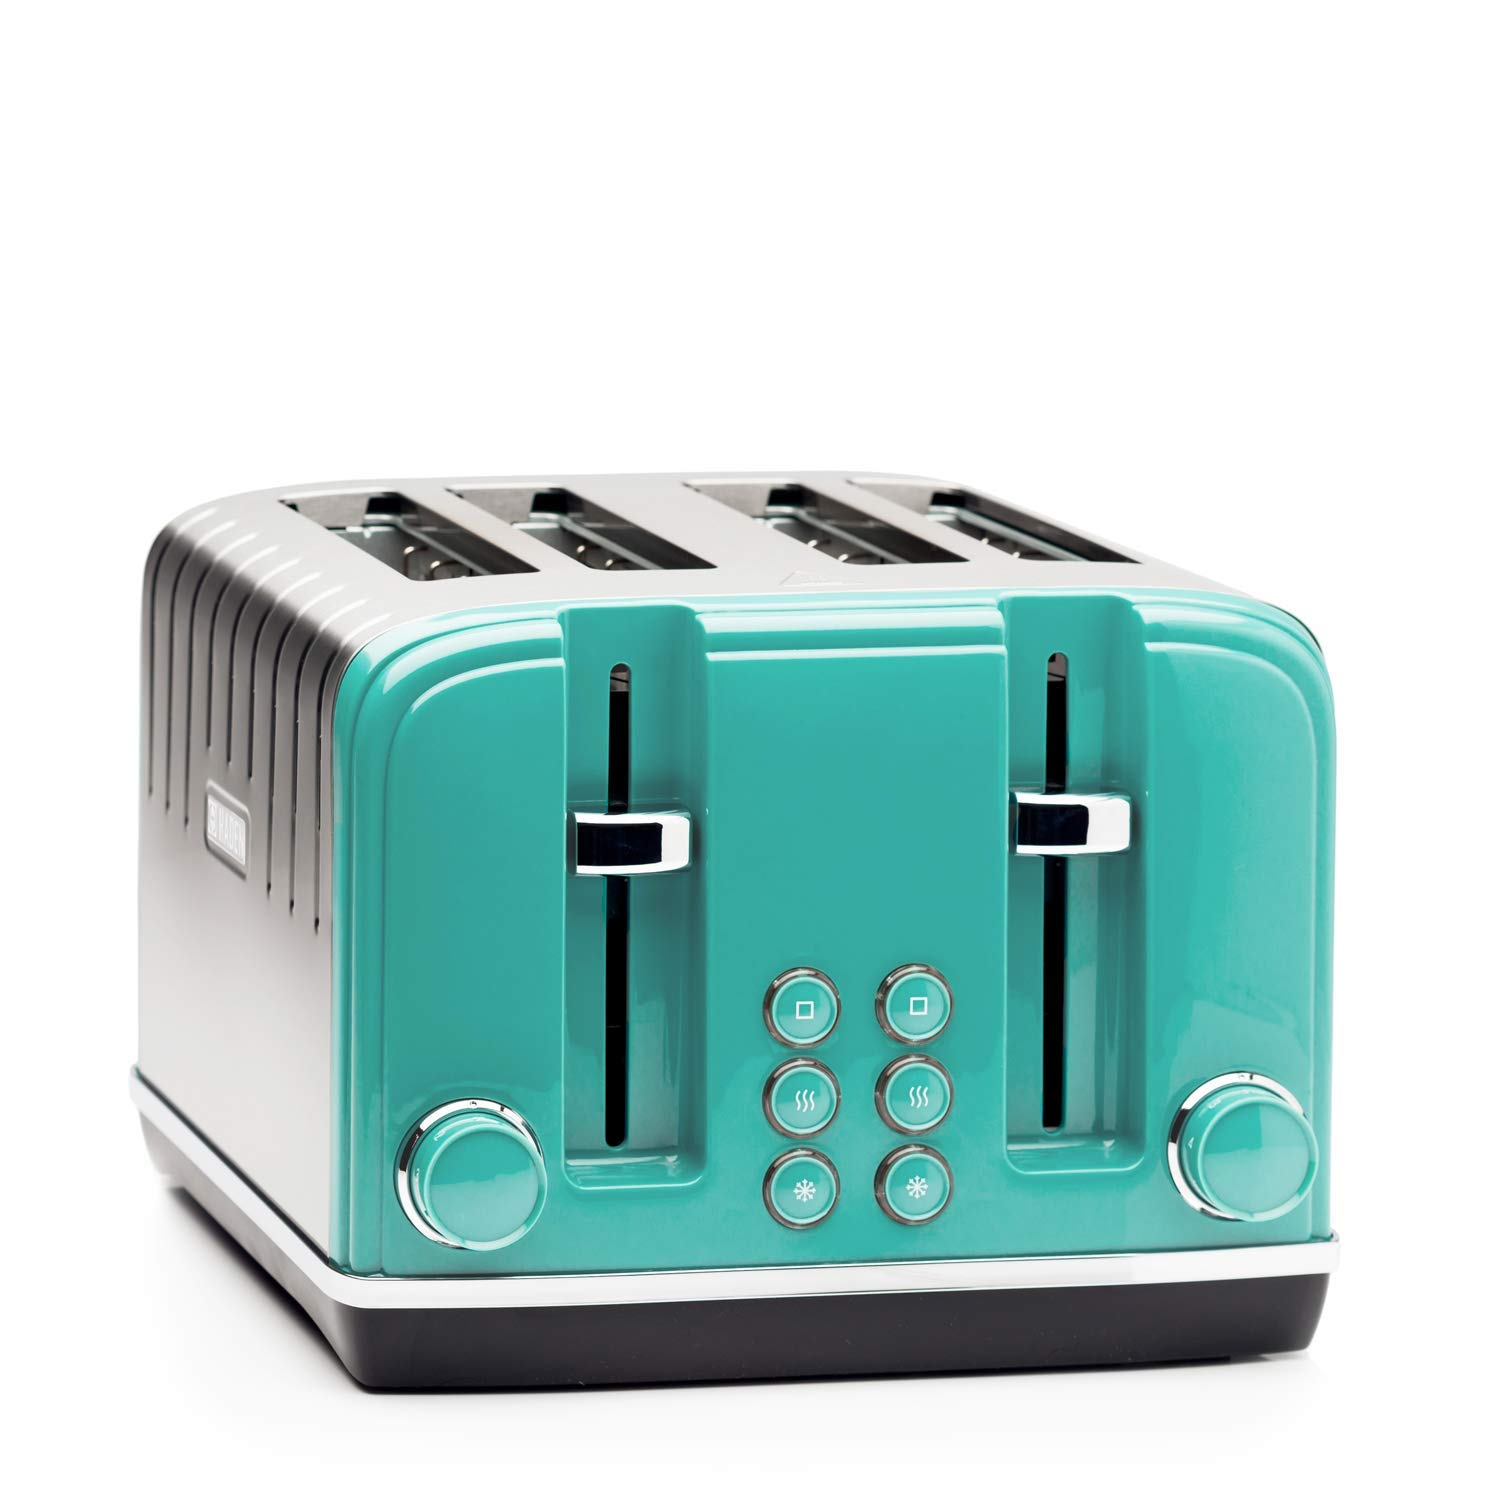 Haden Salcombe 4 Slice Toaster Deep Teal